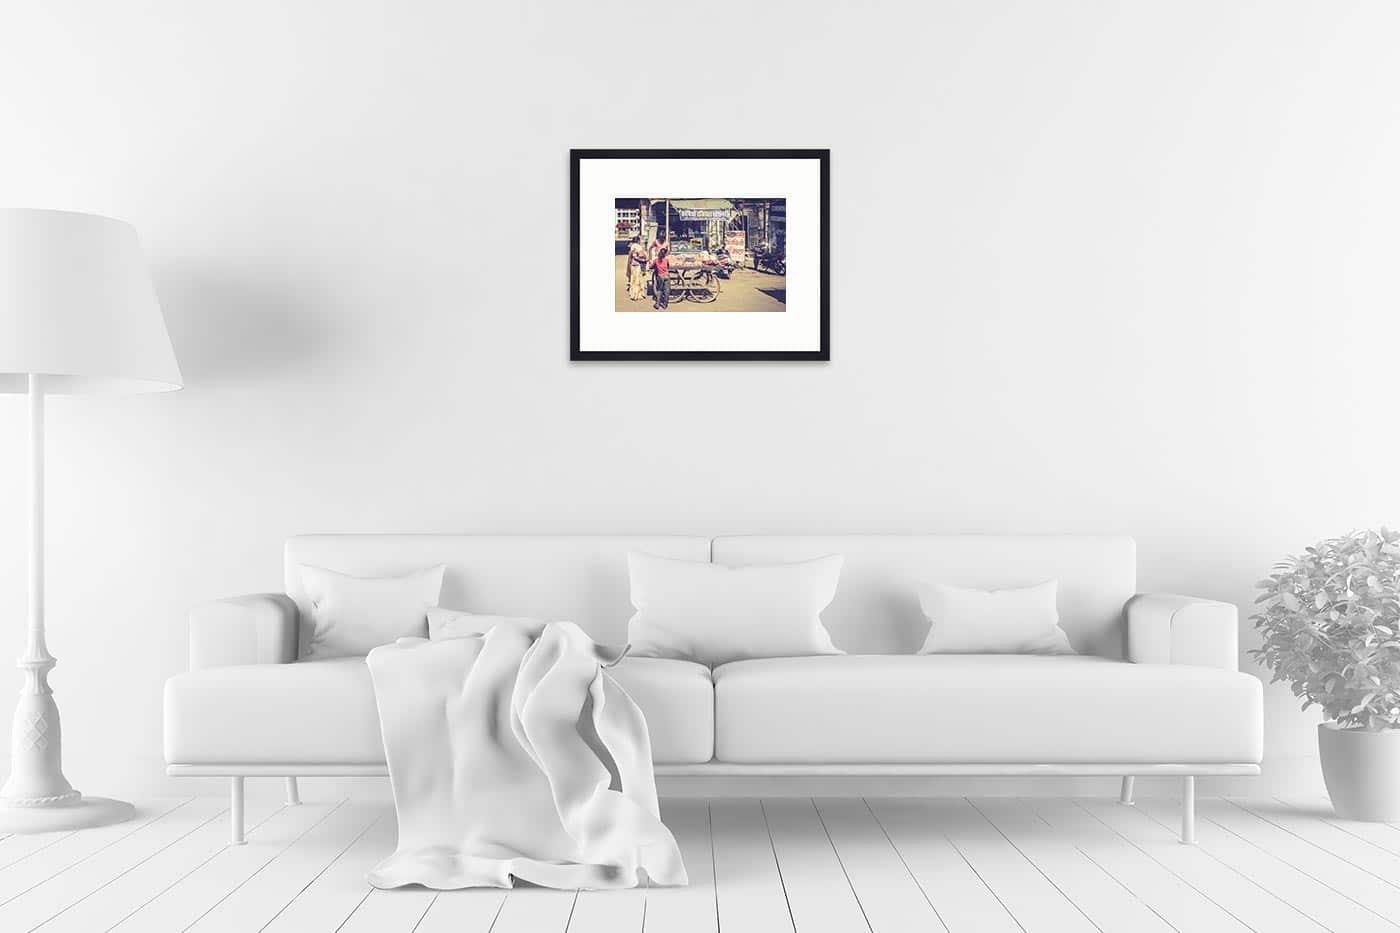 Cadre galerie 40x50 Shopping